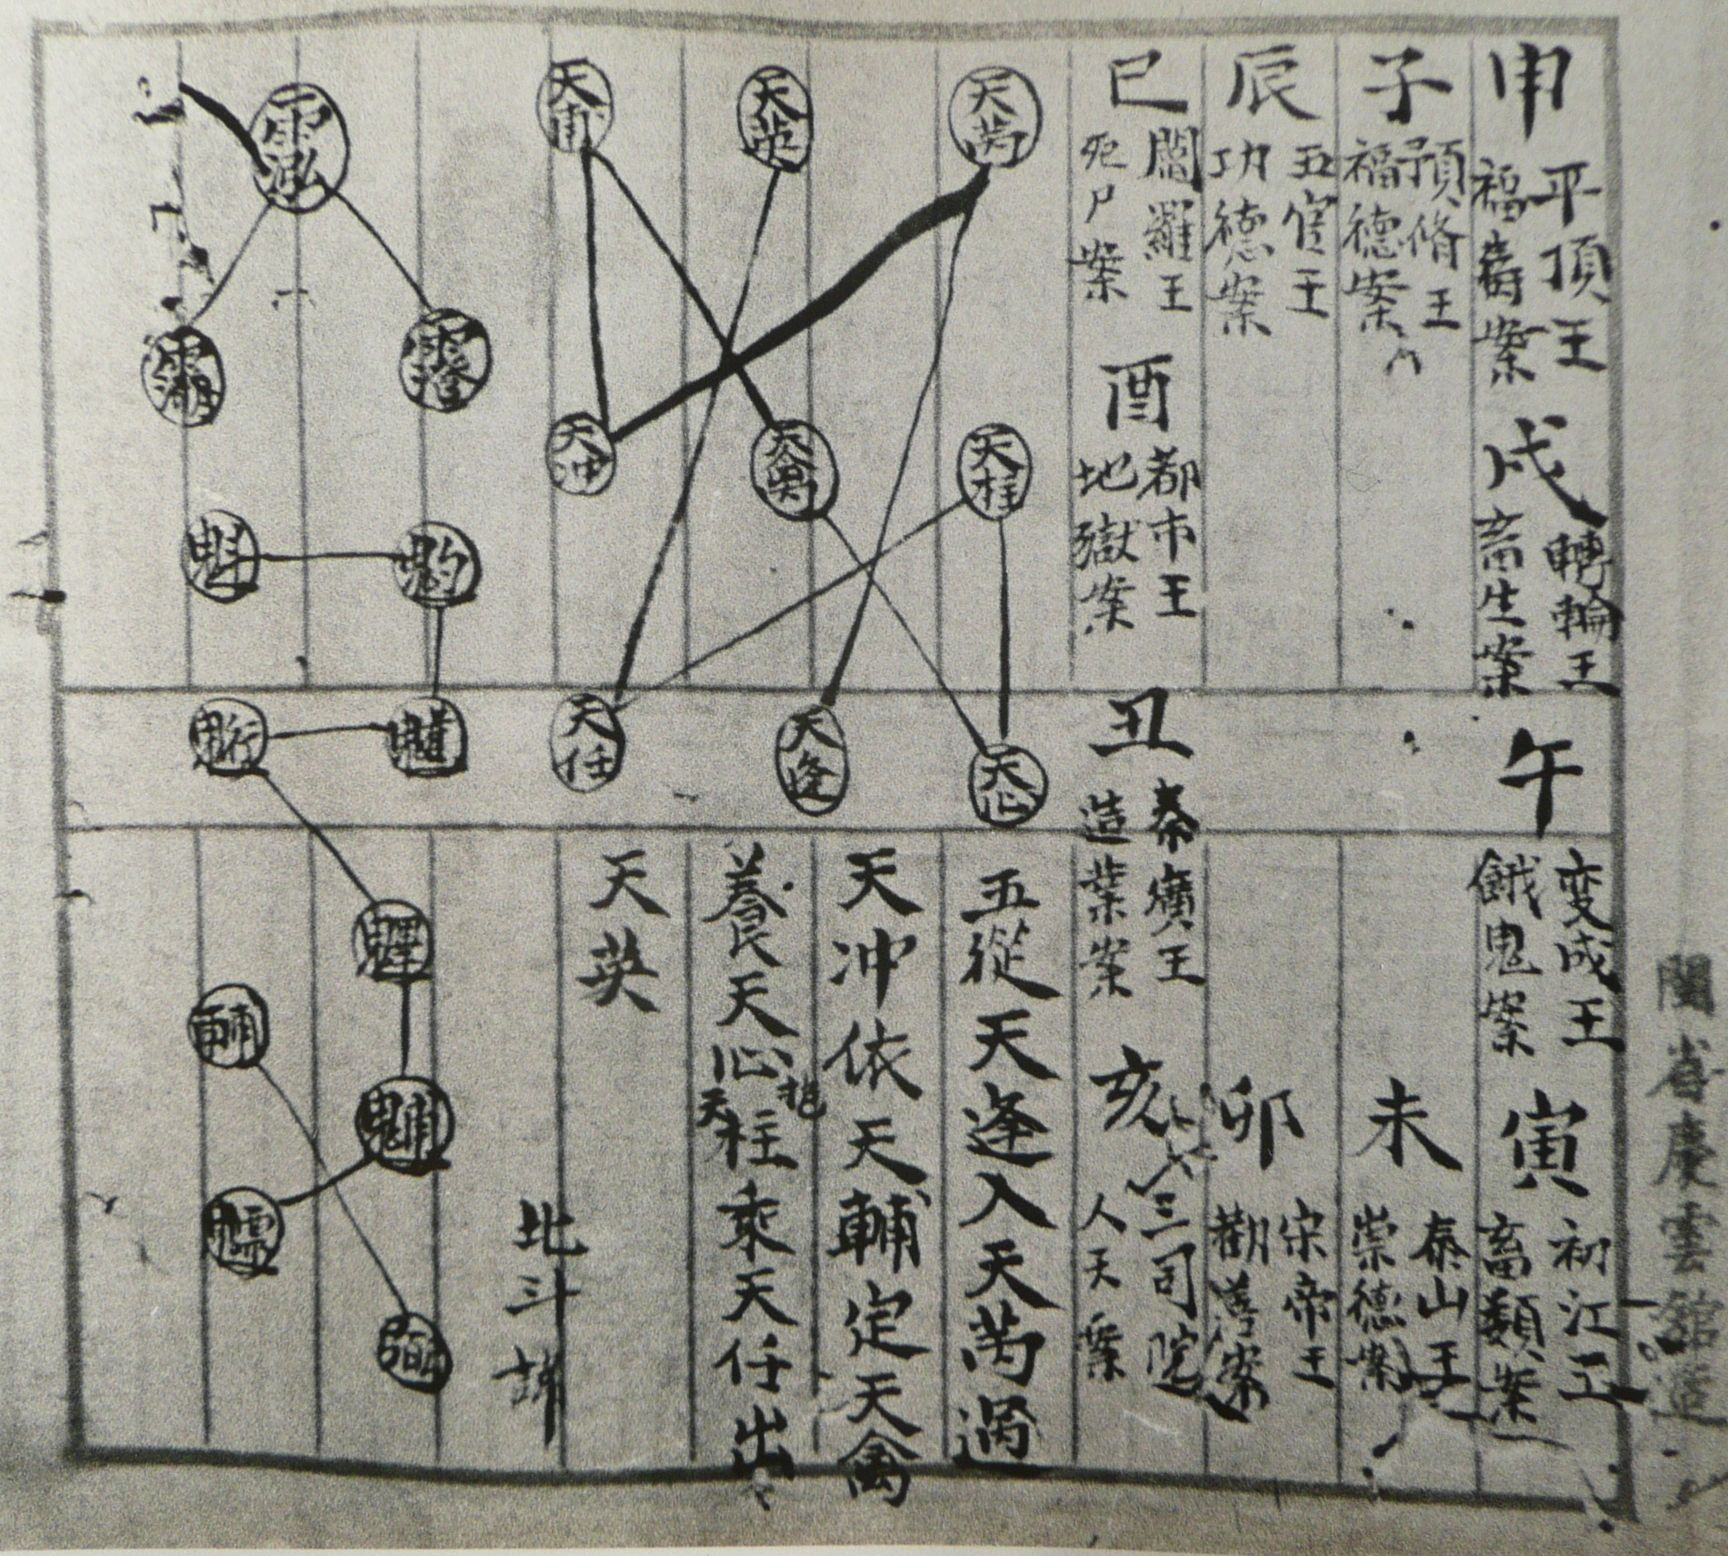 A Chart Of The Fa Lu Star Stepping Ritual Pacing Void These Dance Diagrams As Well Step Are Steps For Daoist Rituals Invoking Power Specific Stars By Reiterating